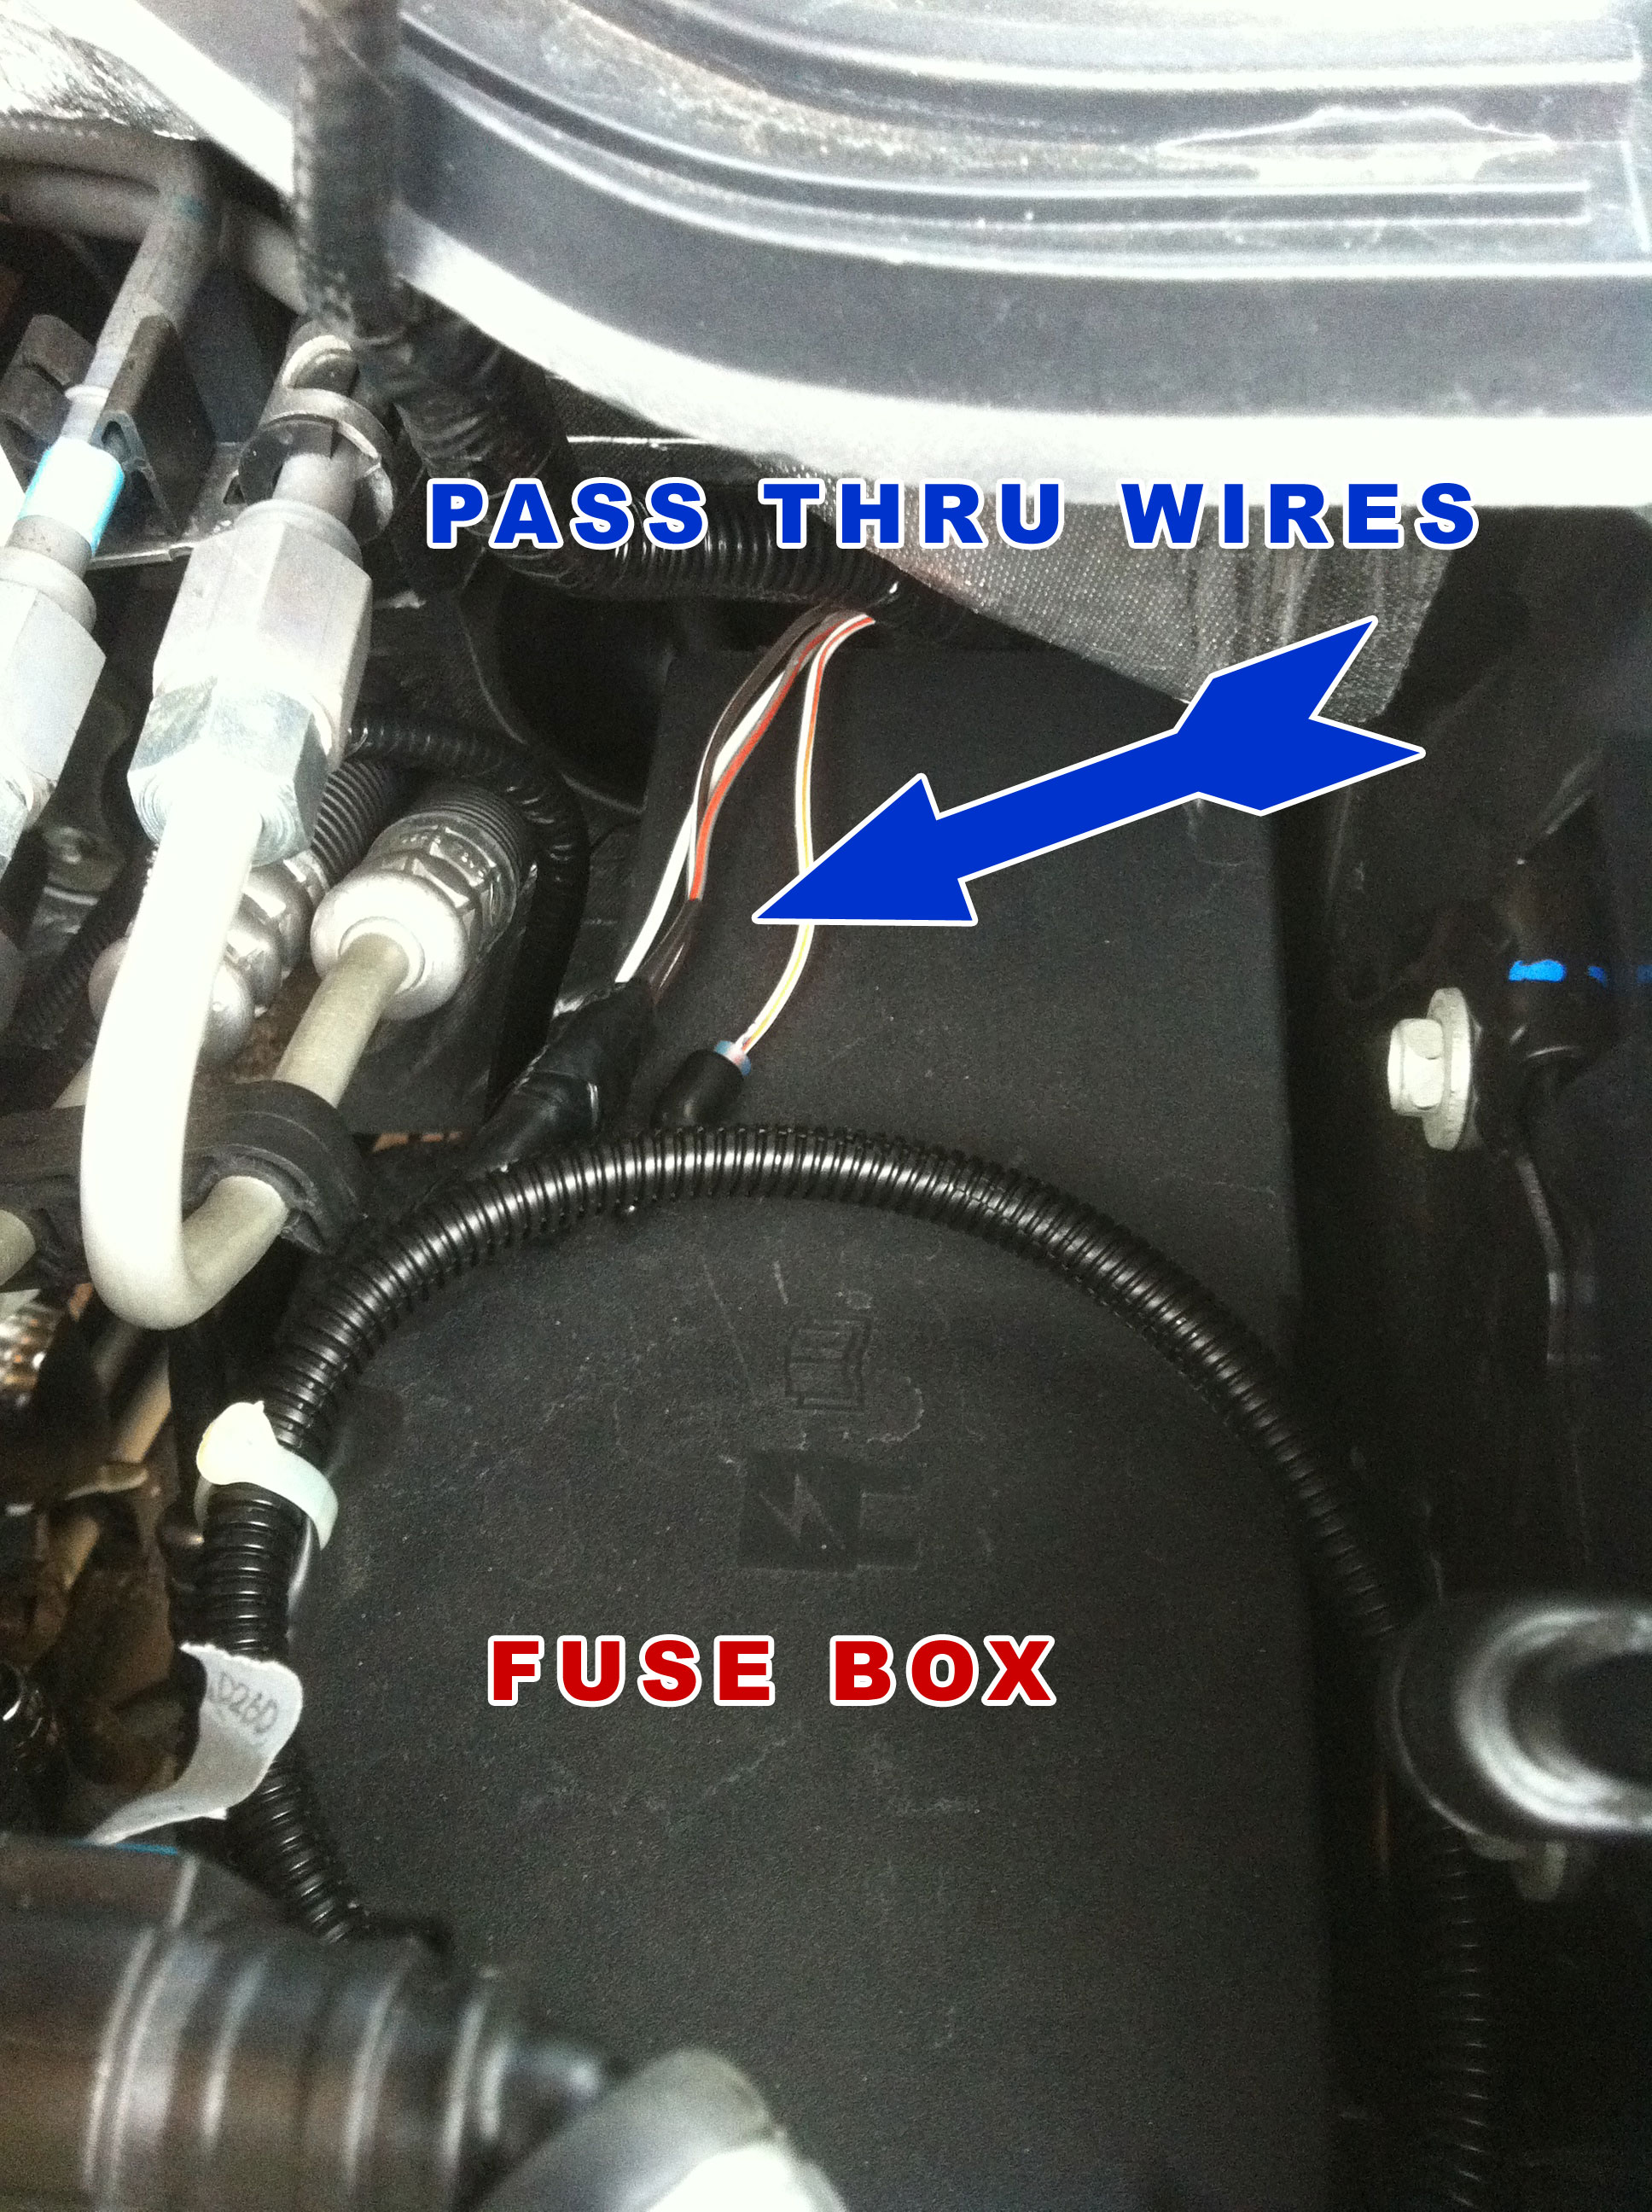 2012 ford upfitter switch wiring upfitter external access wire location  the diesel stop  upfitter external access wire location